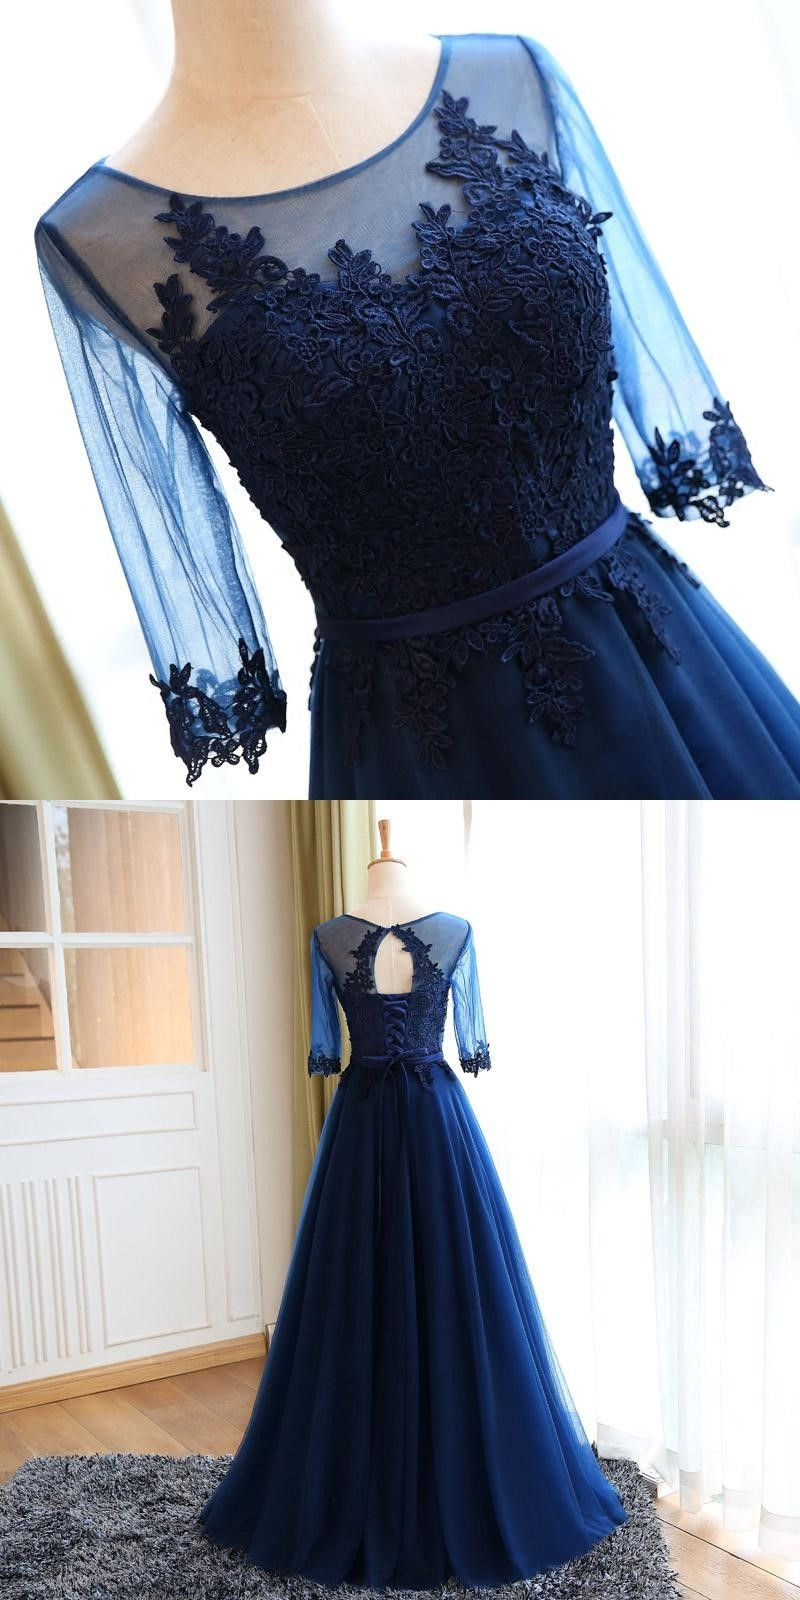 Aline round neck navy blue tulle evening prom dress with appliques